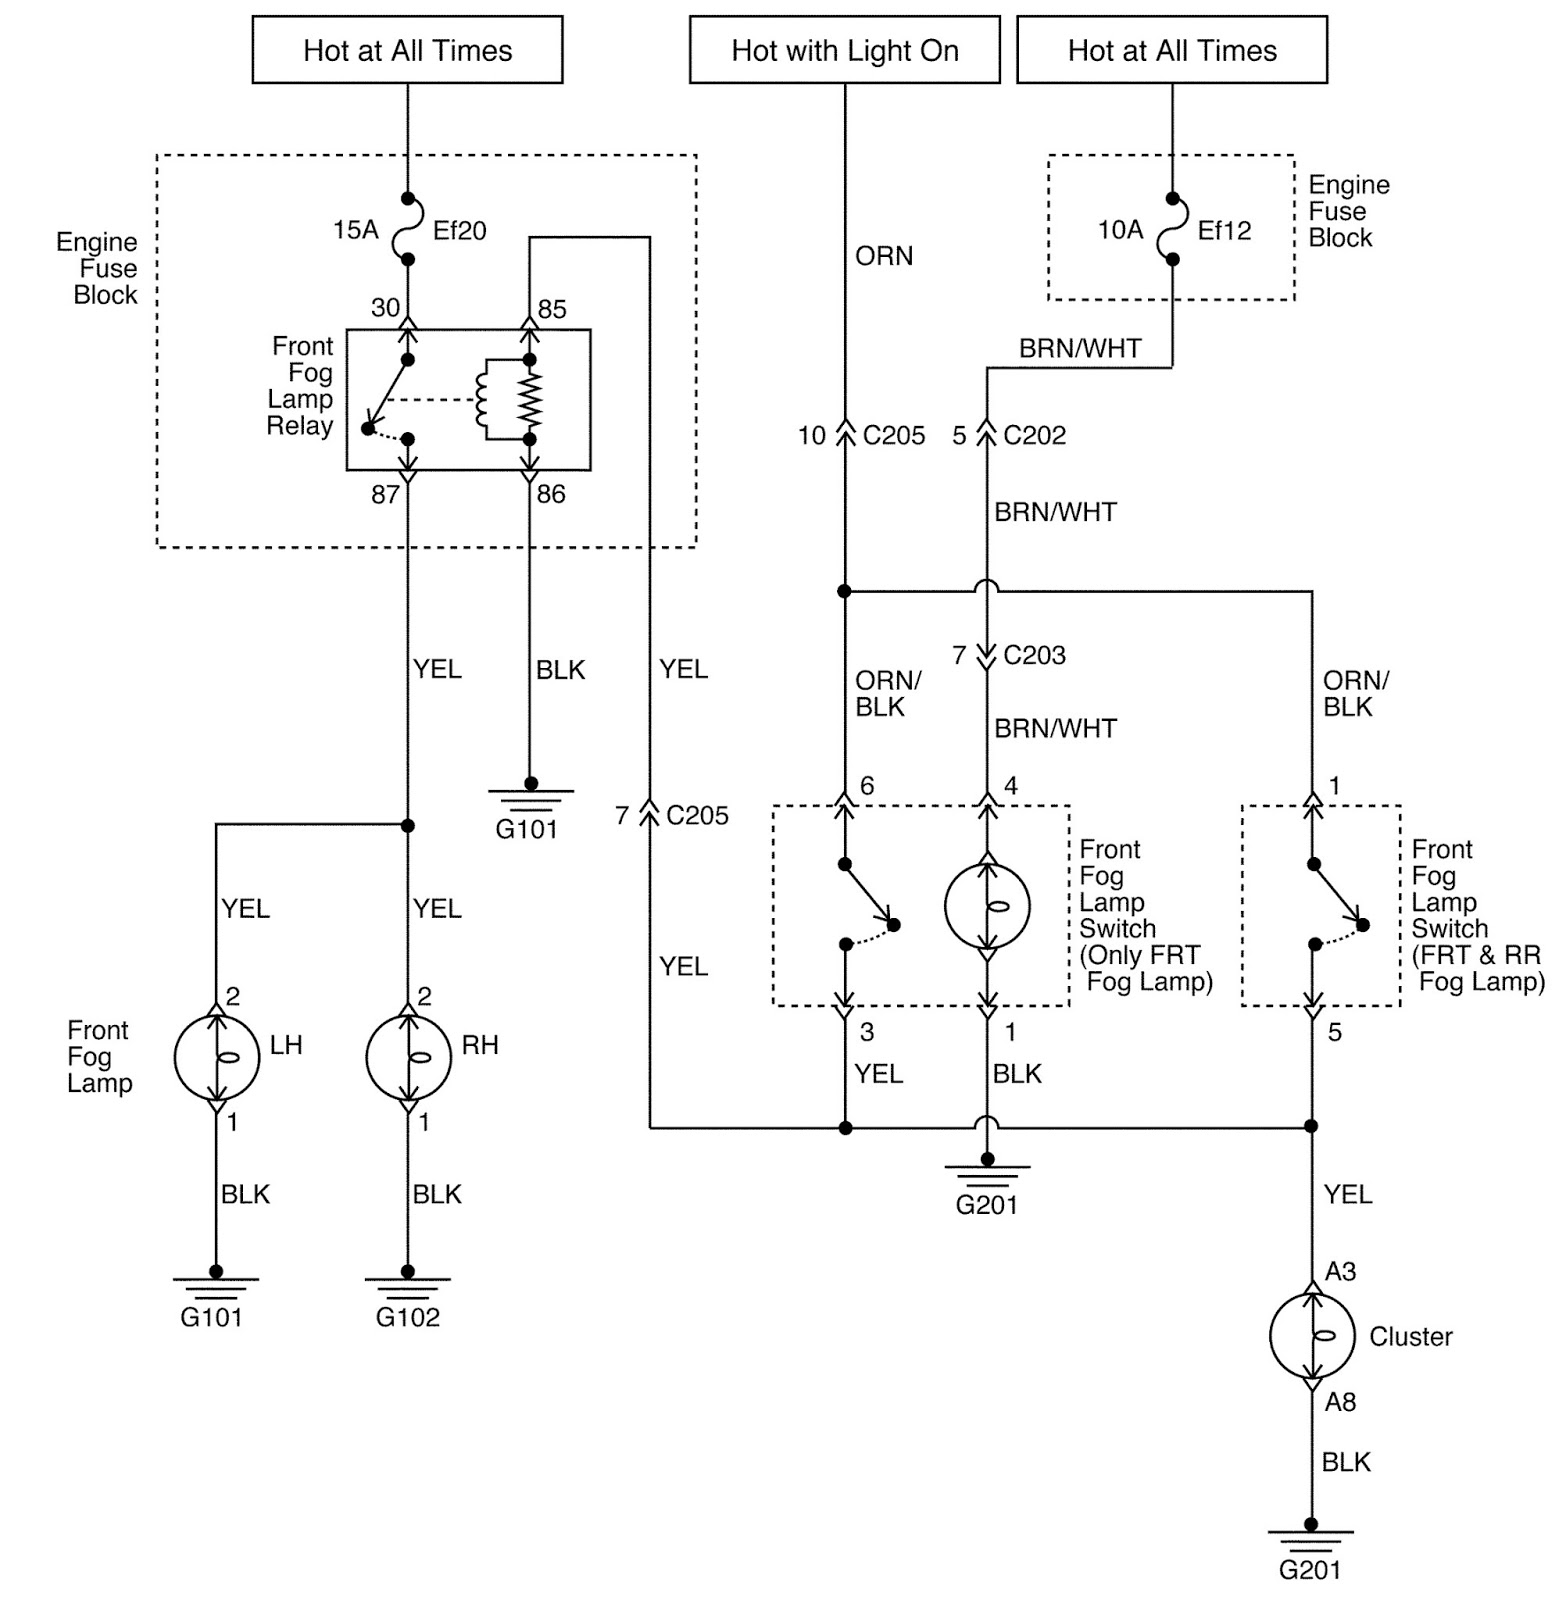 daewoo matiz radio wiring diagram example electrical wiring diagram \u2022 Daewoo  Nubira at Daewoo Matiz